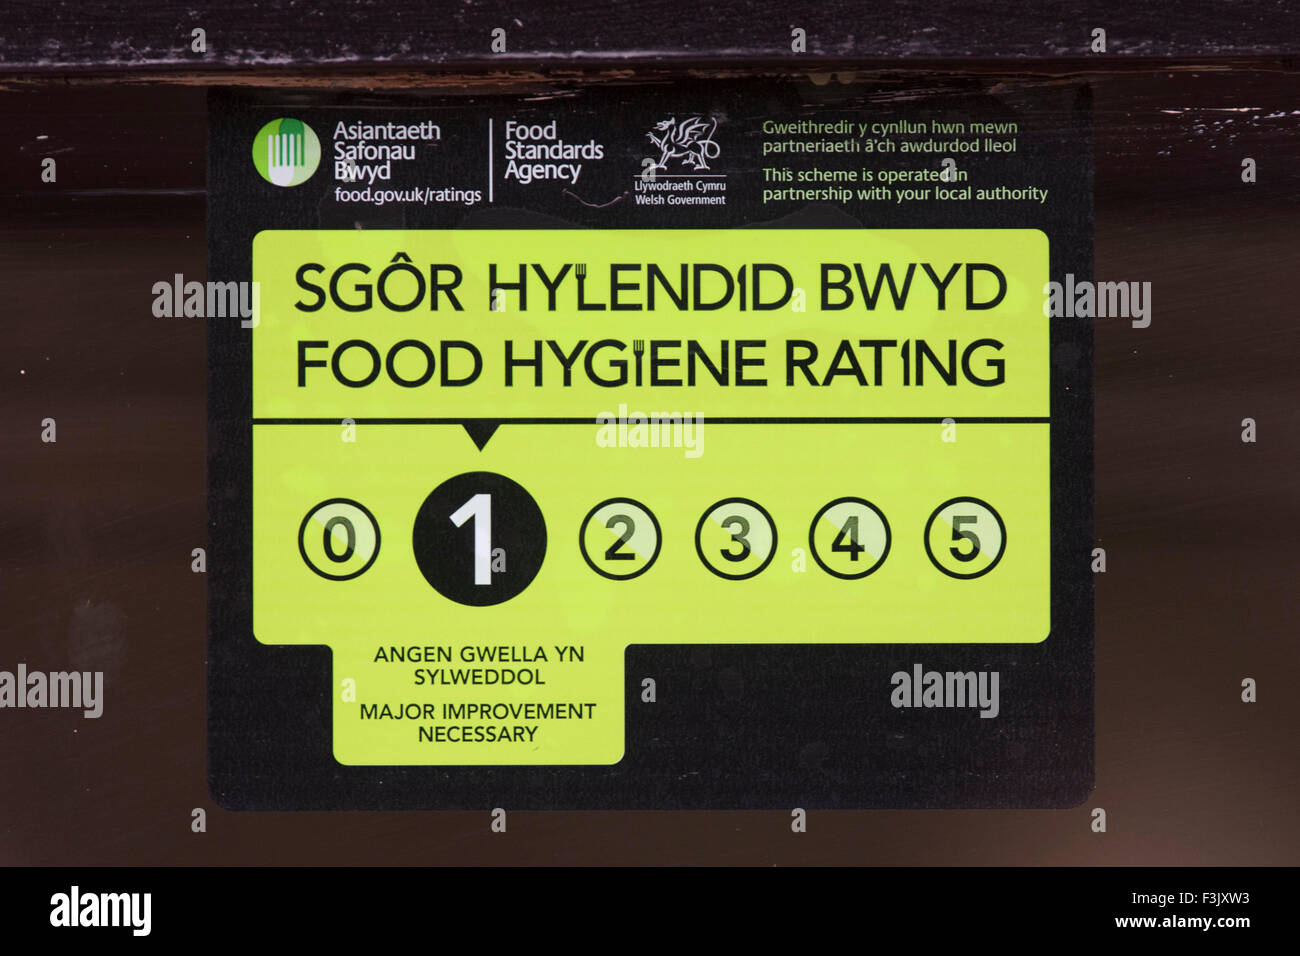 A restaurant with a level 1 food hygiene rating awarded by the Food Standards Agency (FSA) - Stock Image